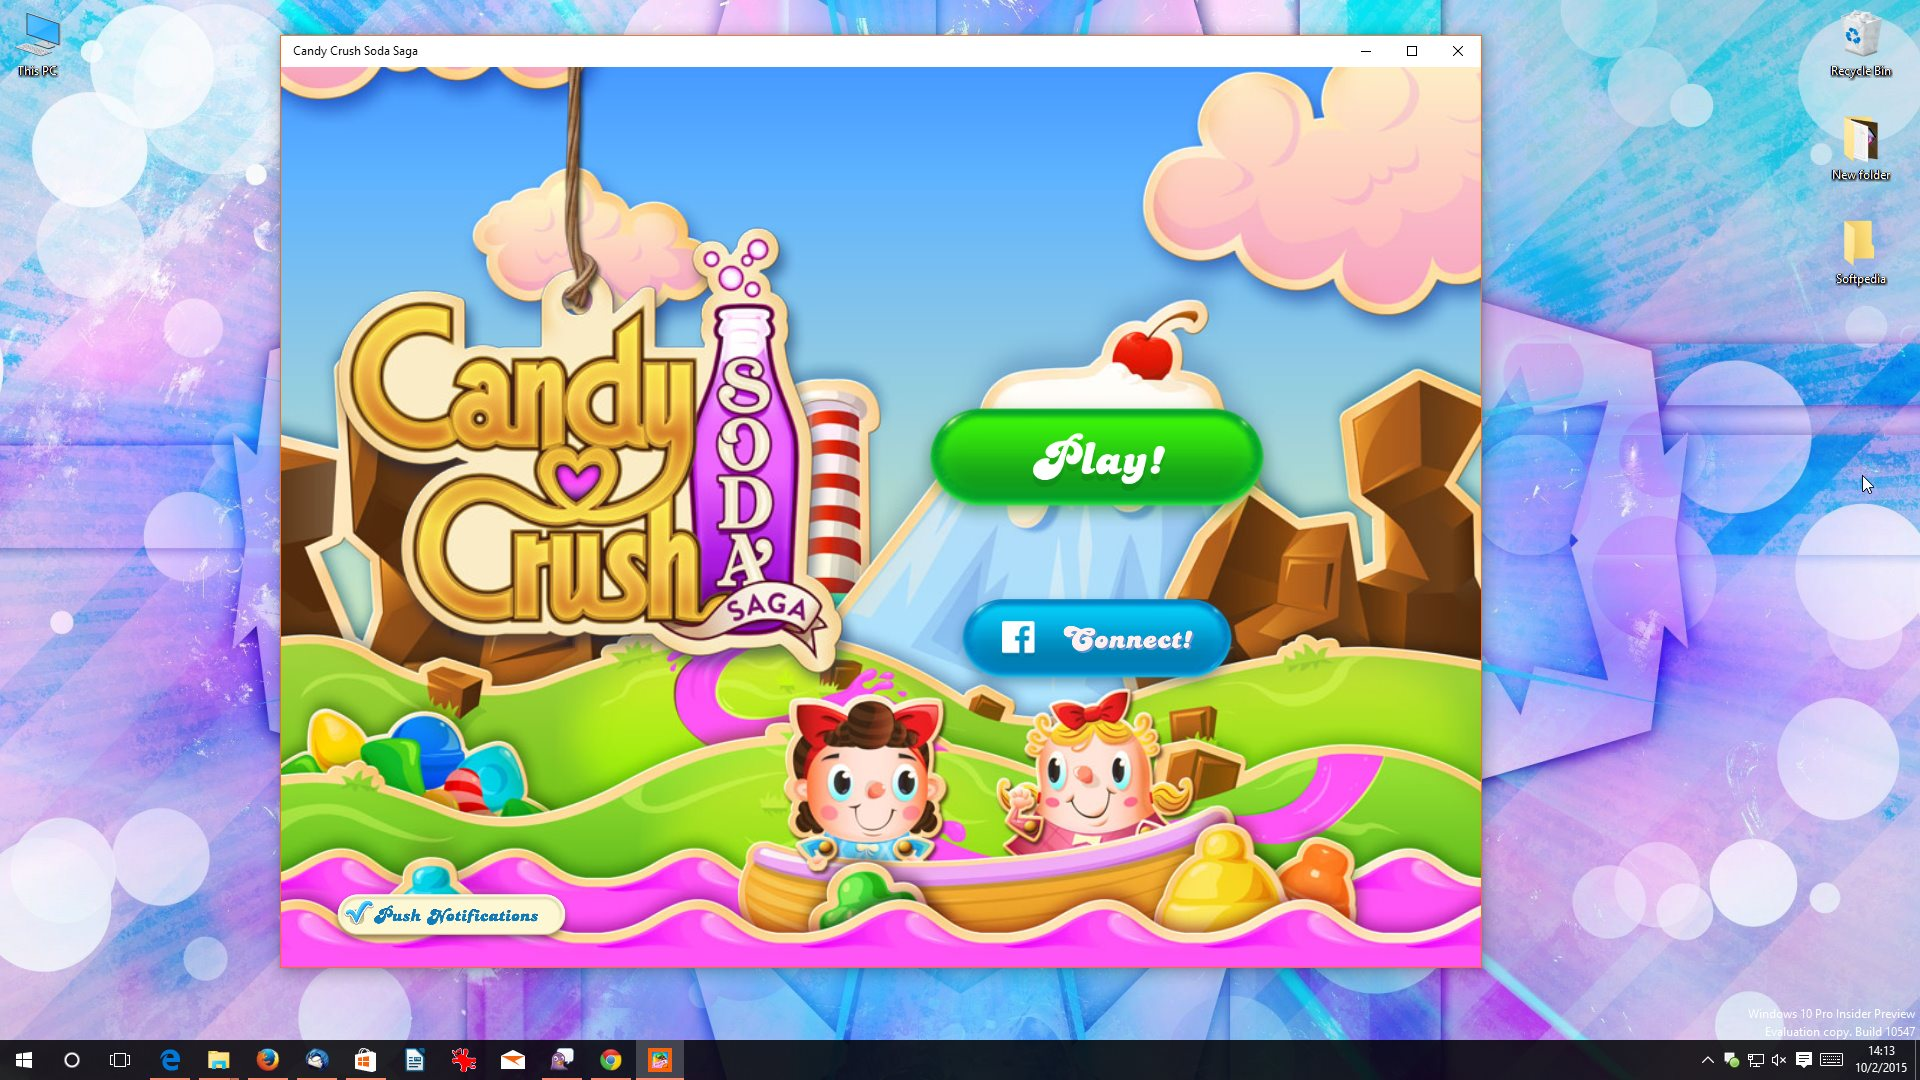 free download candy crush soda saga for windows 8